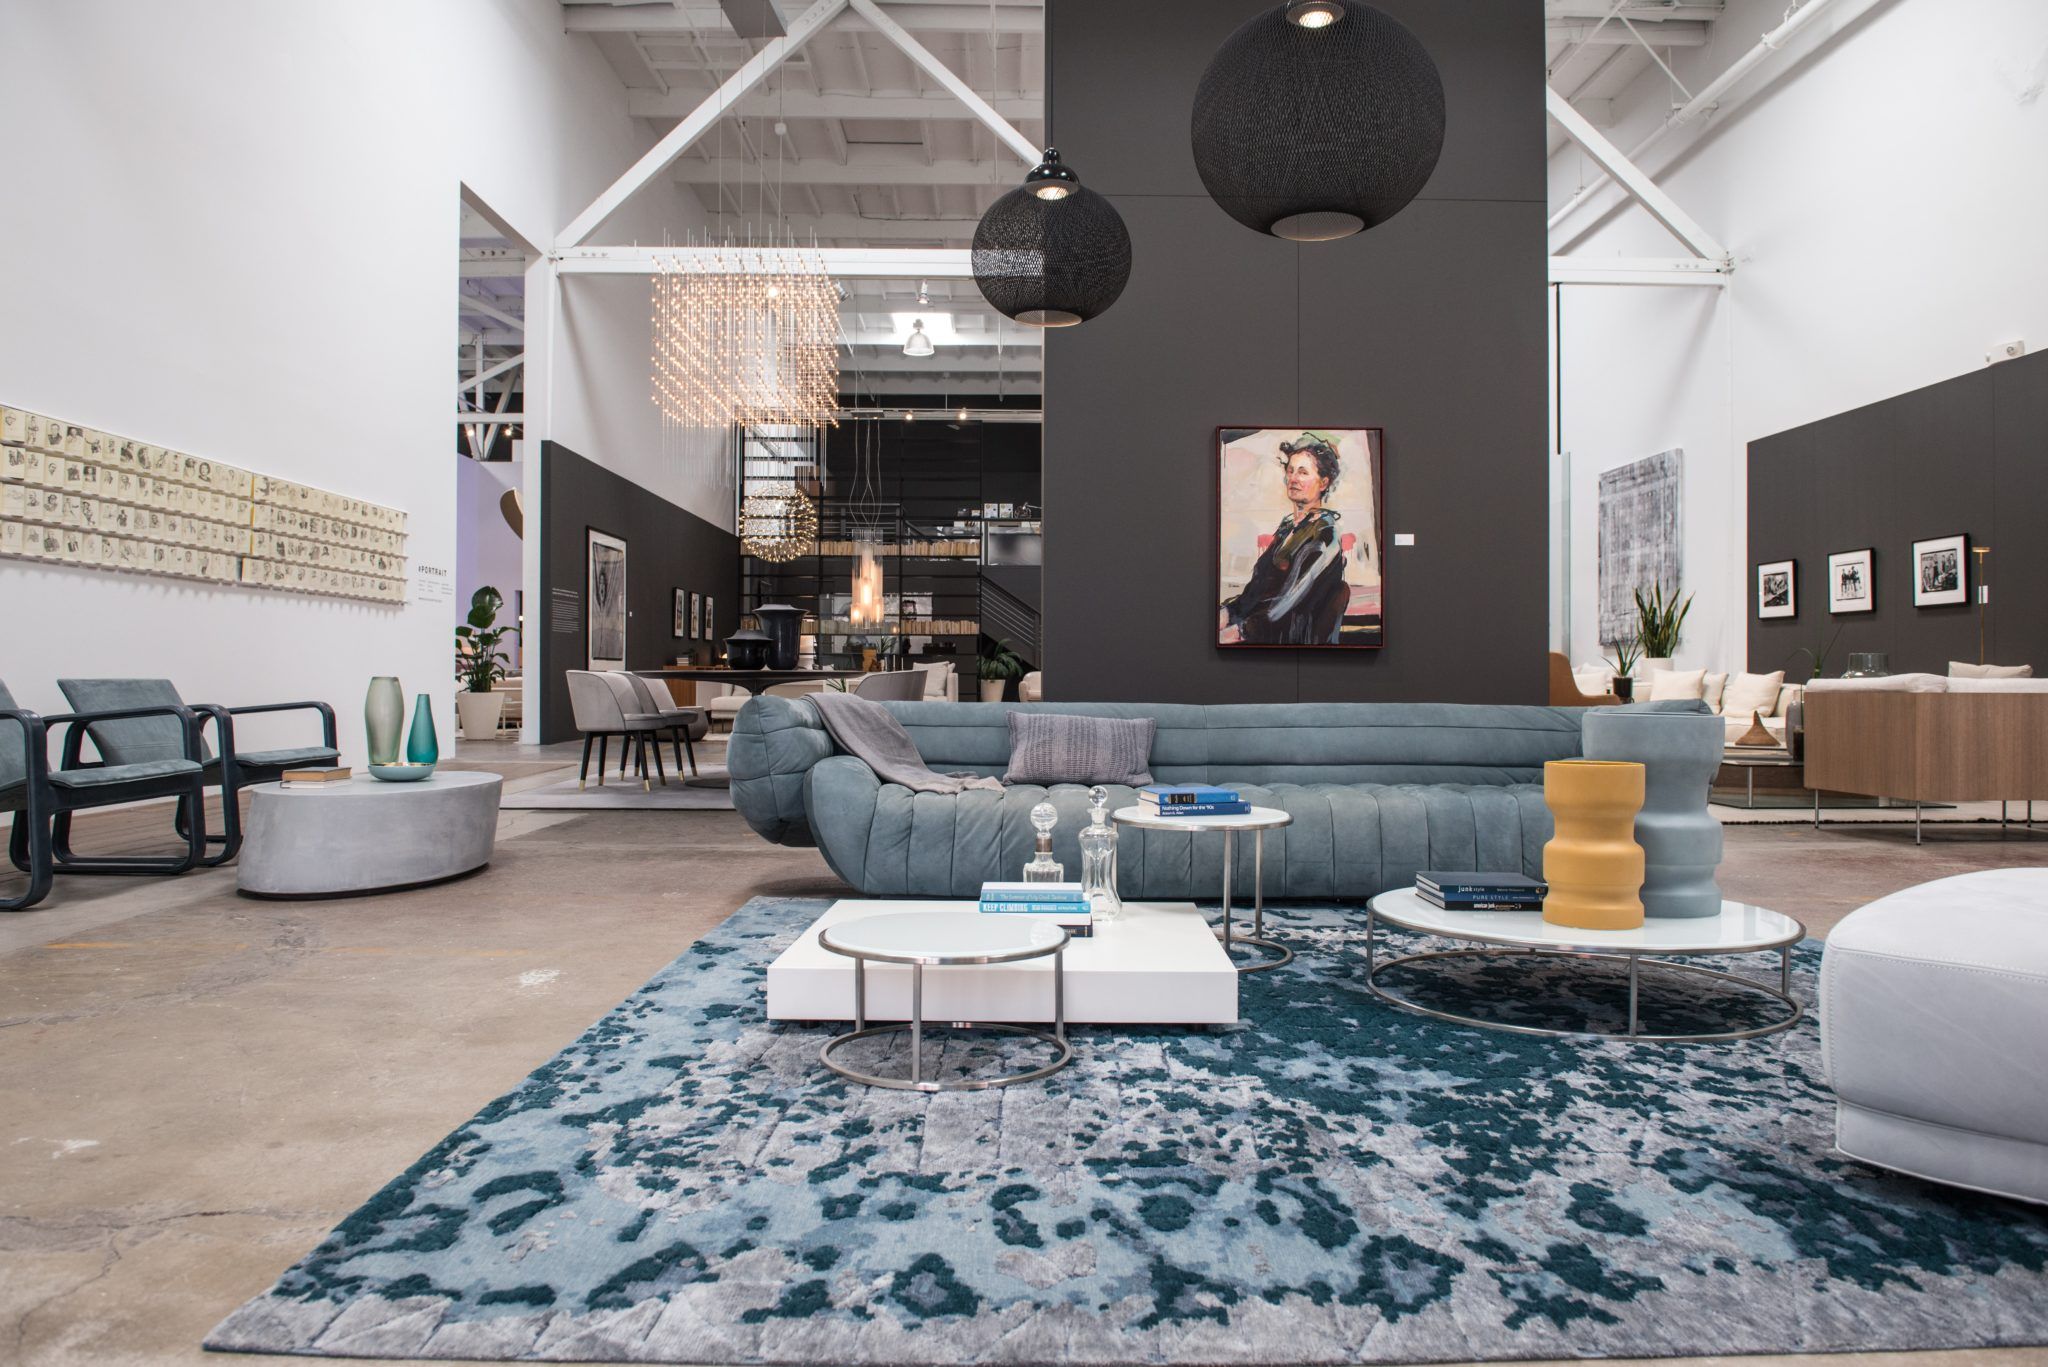 """Known for representing major European brands like FLOS, Boffi, Paola Lenti, and more, DZINE's showroom is also home to smaller family-owned makers. Founder Eve Forbord works to keep these ties to the European market strong. """"Ninety-five percent of our business is in Italian furnishings,"""" Forbord said. """"We go to Salone del Mobile in Milan every year to see new products firsthand and to meet with our manufacturers. It also gives us the opportunity to explore smaller manufacturers and emerging designers who are not represented in the U.S."""""""